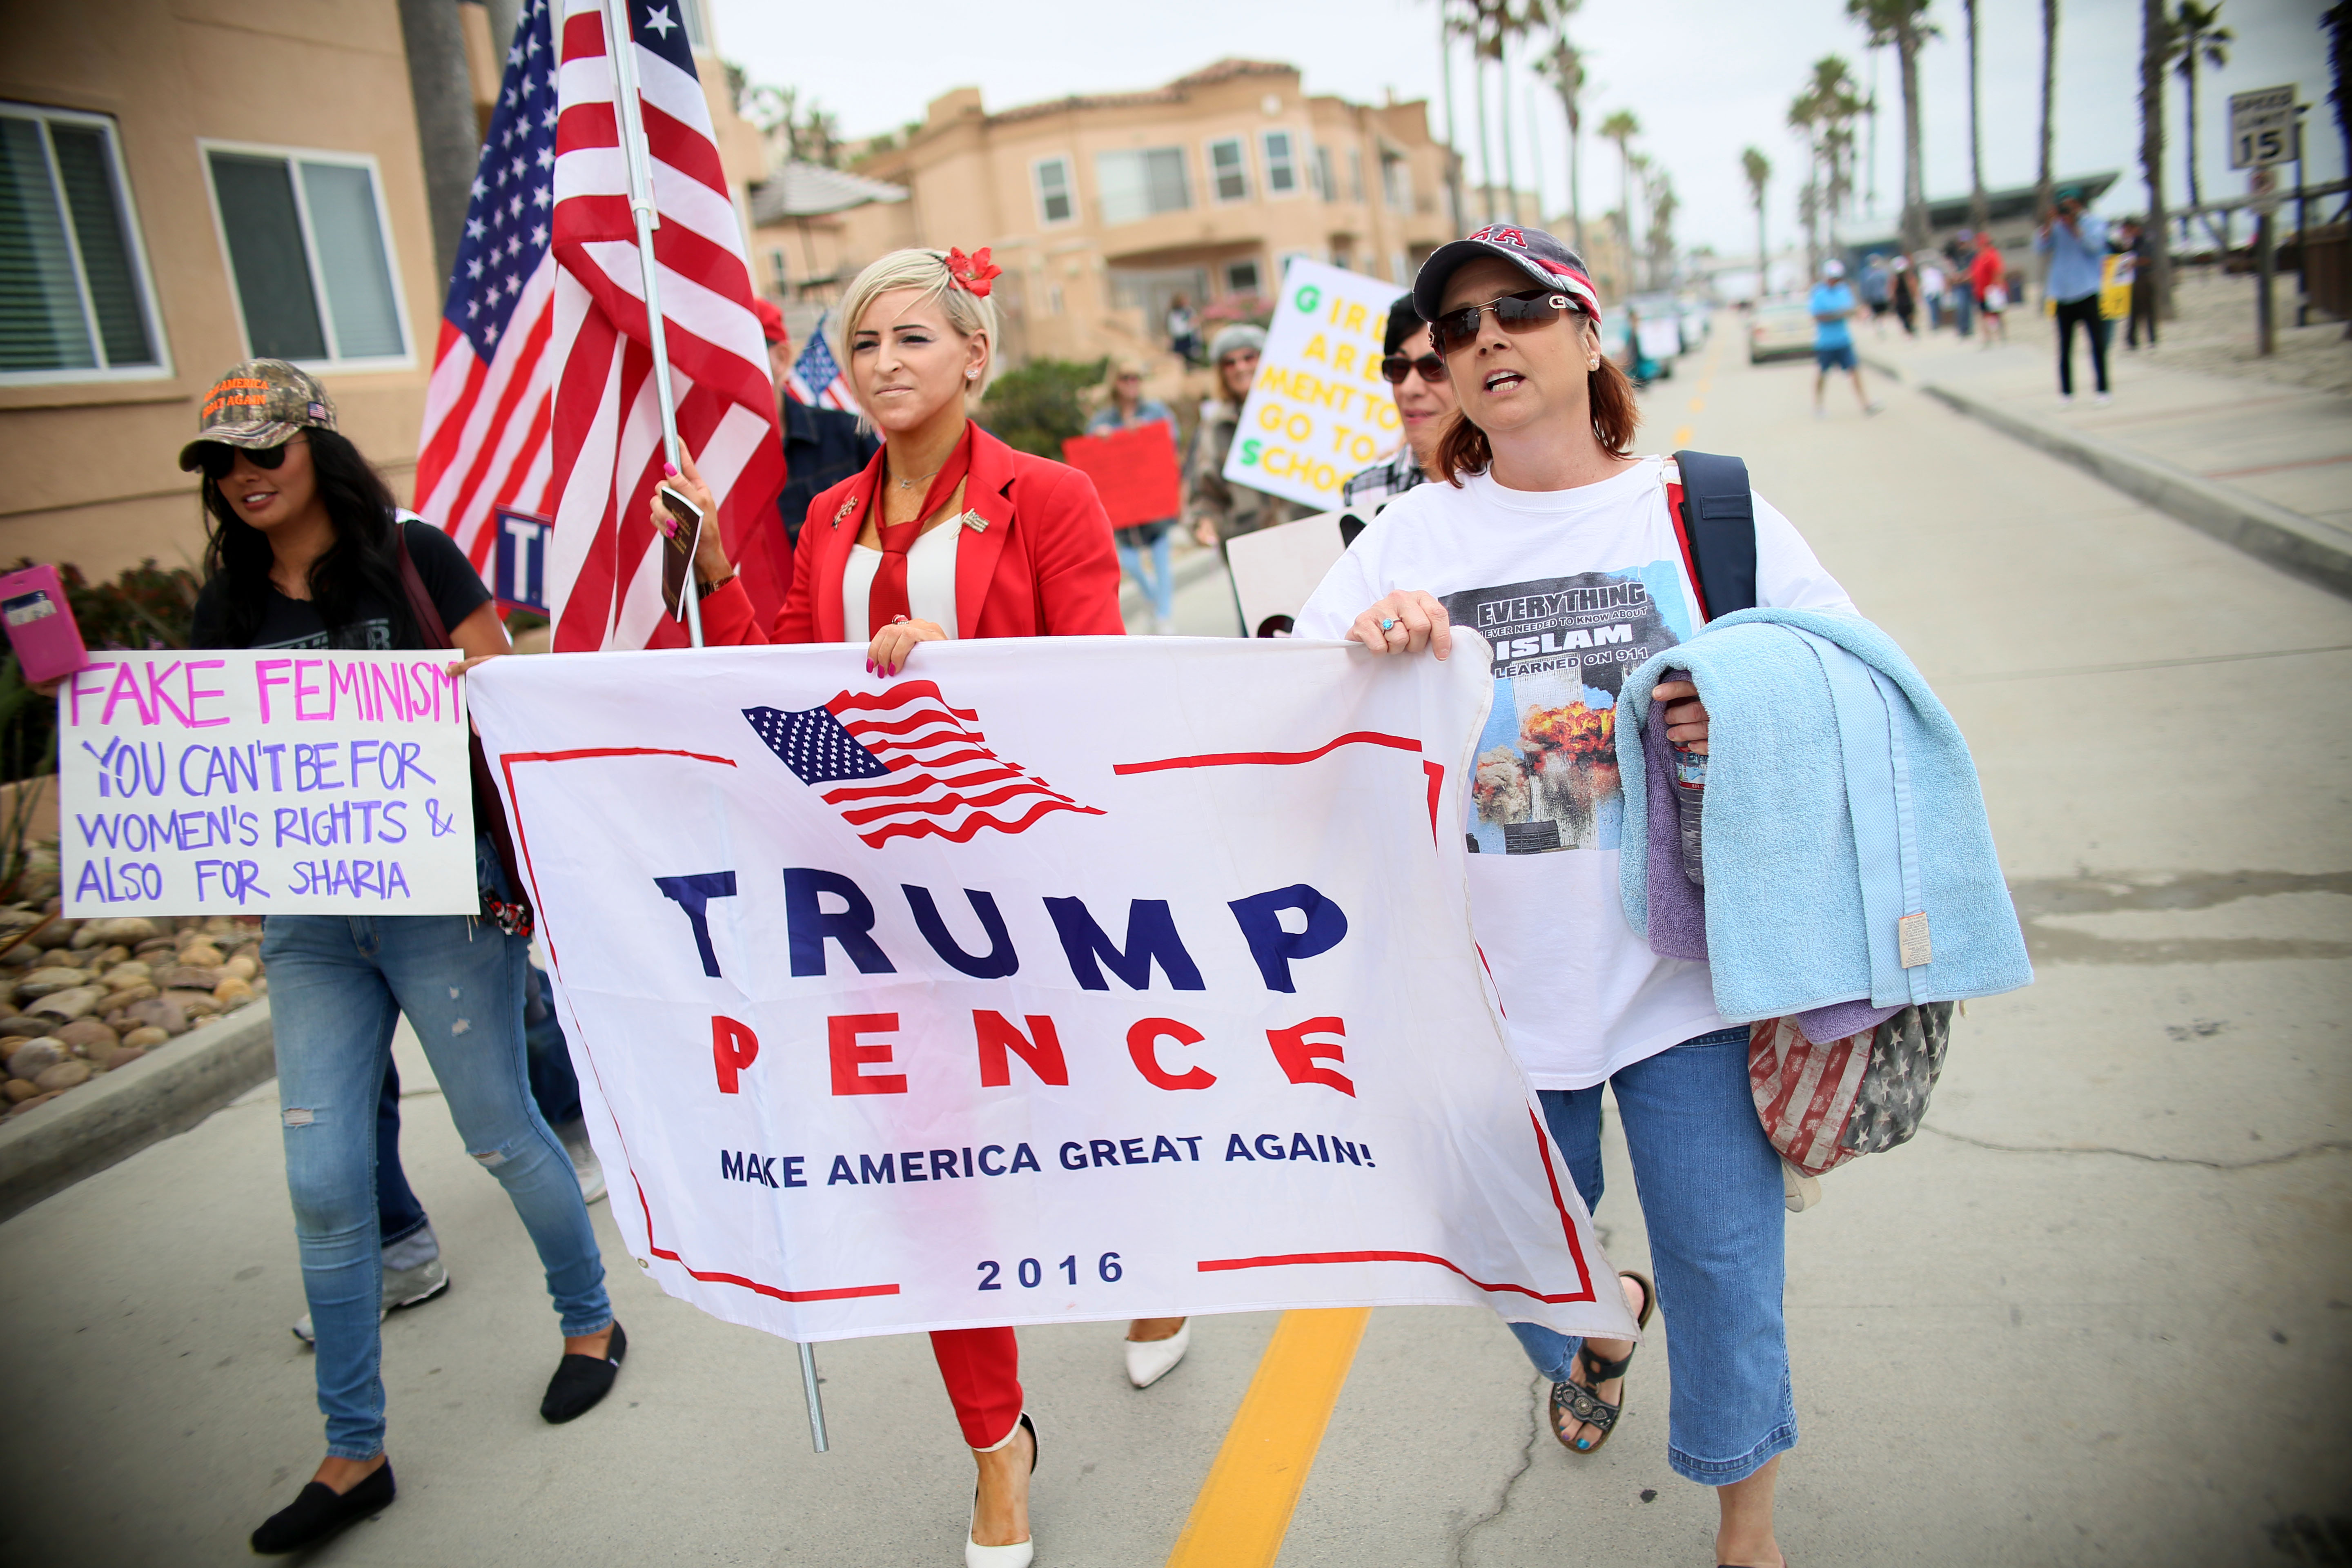 Trump supporters held several rallies around the nation to bring attention to helping protect women and children from Sharia Law and its impact on Muslim women and children including honor killings and Female Genital Mutilation. (SANDY HUFFAKER/AFP/Getty Images)